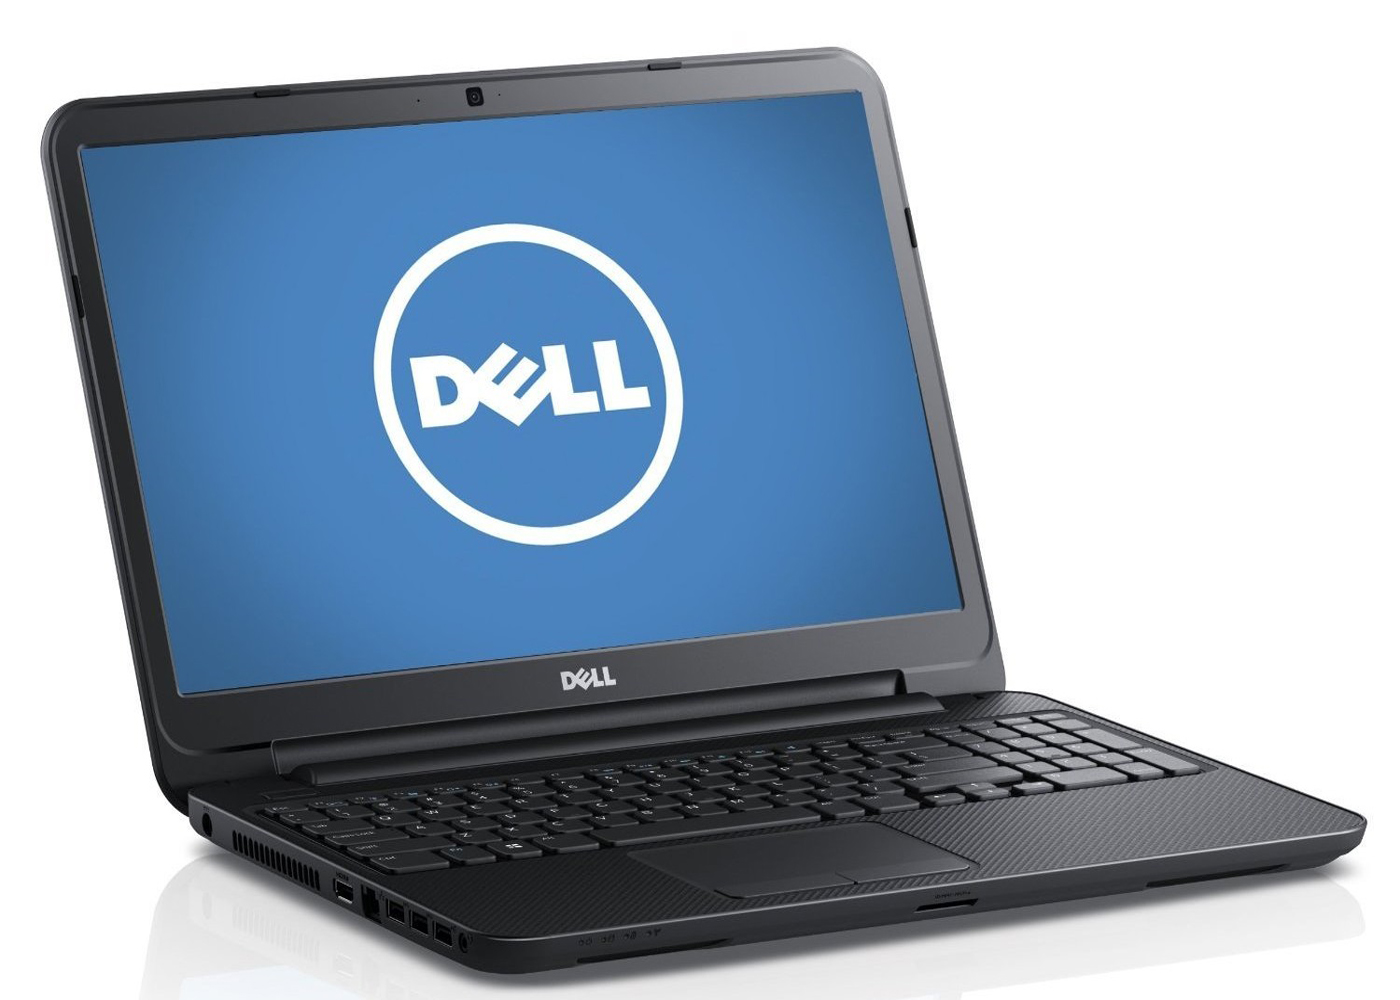 Dell Inspiron 15 3521 15.6-inch Laptop (Black)01